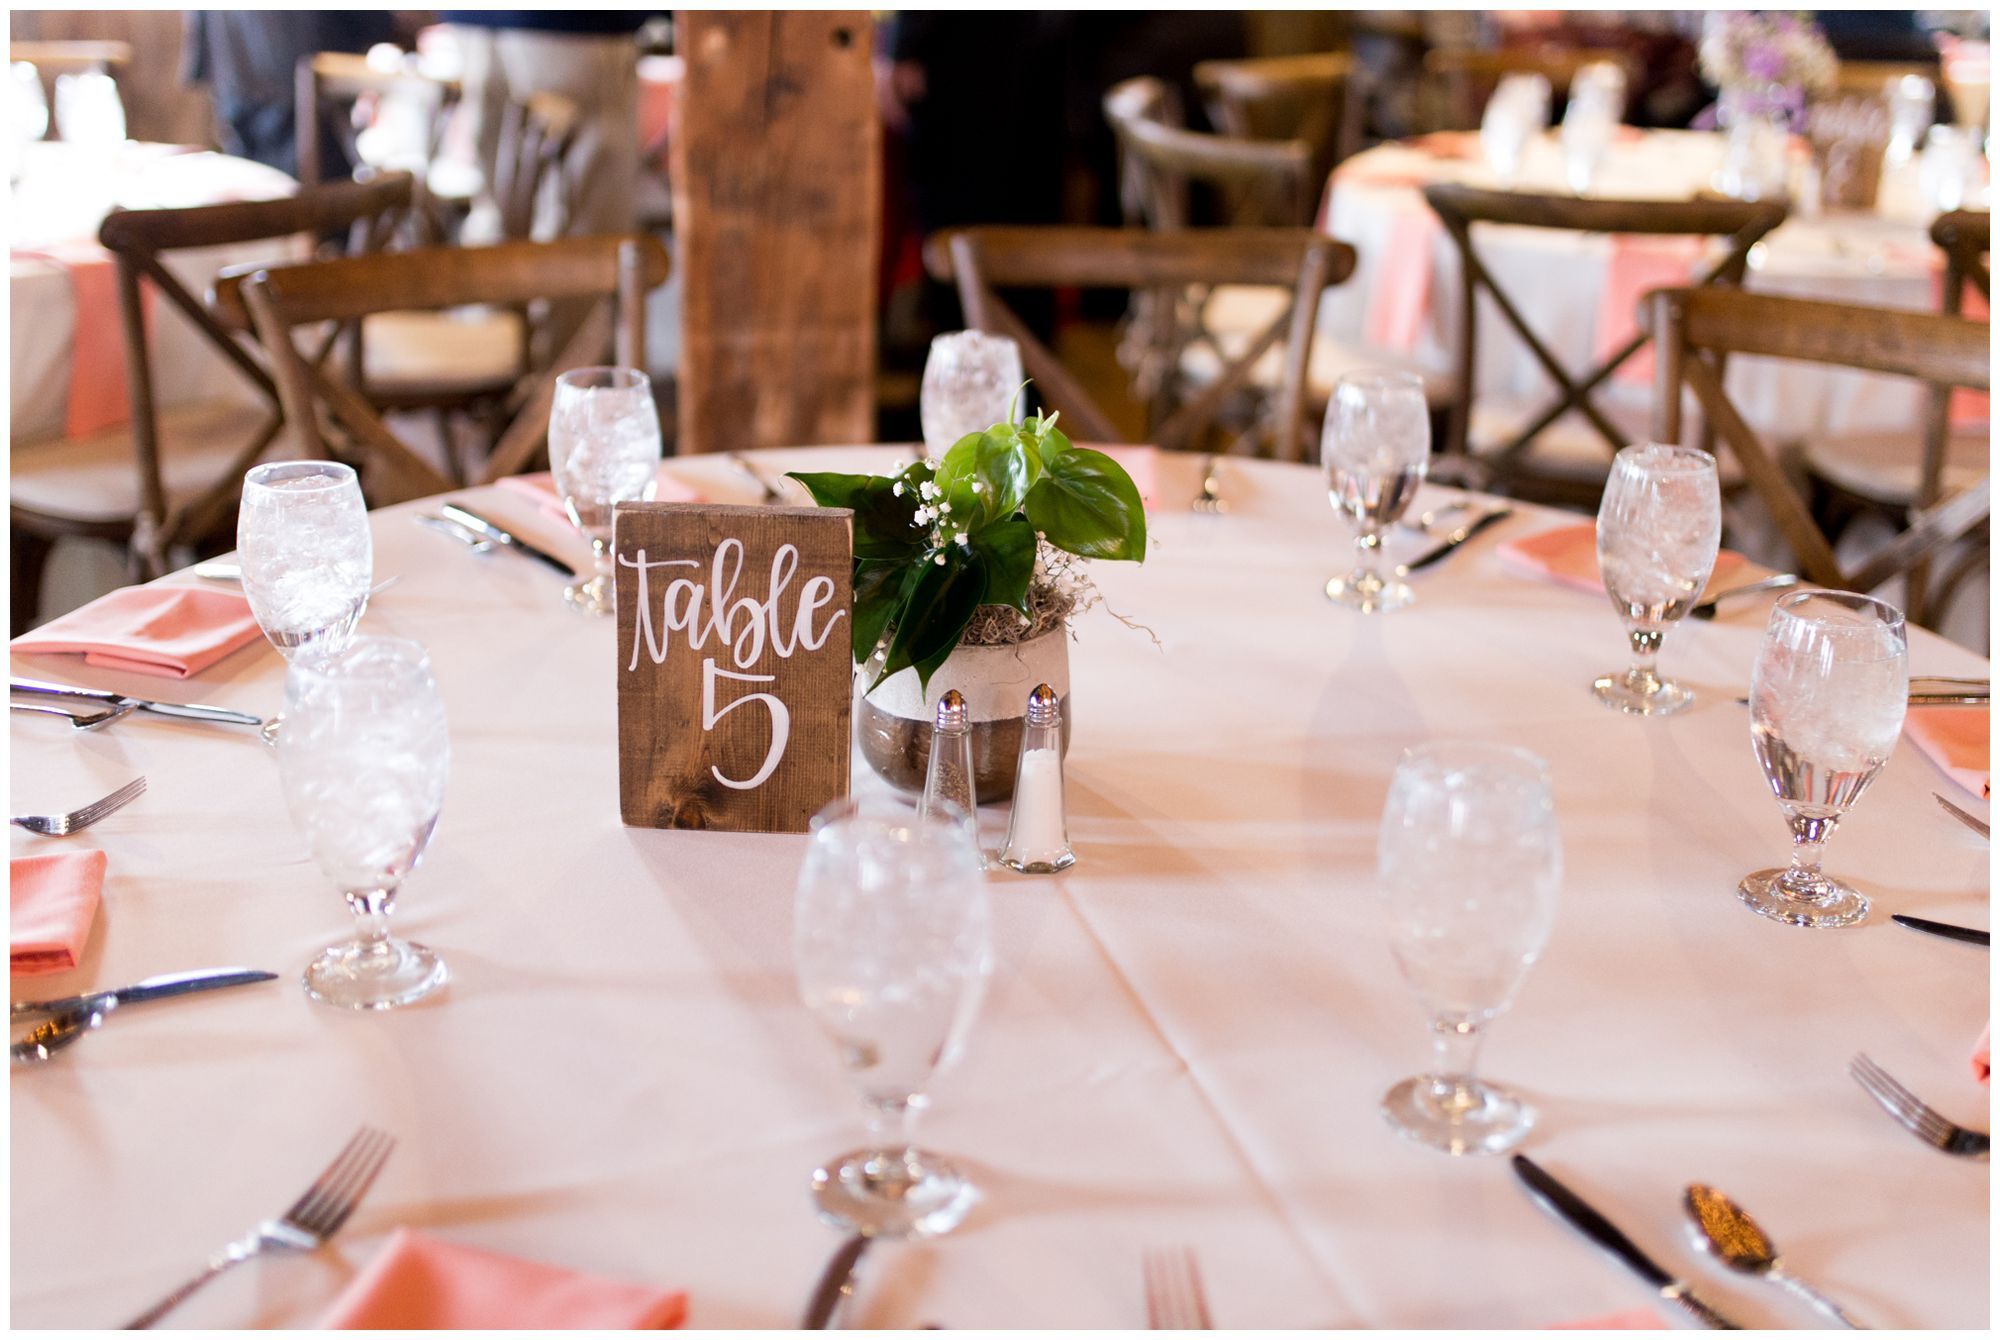 Mustard Seed Gardens wedding reception rustic table decor in Noblesville Indiana